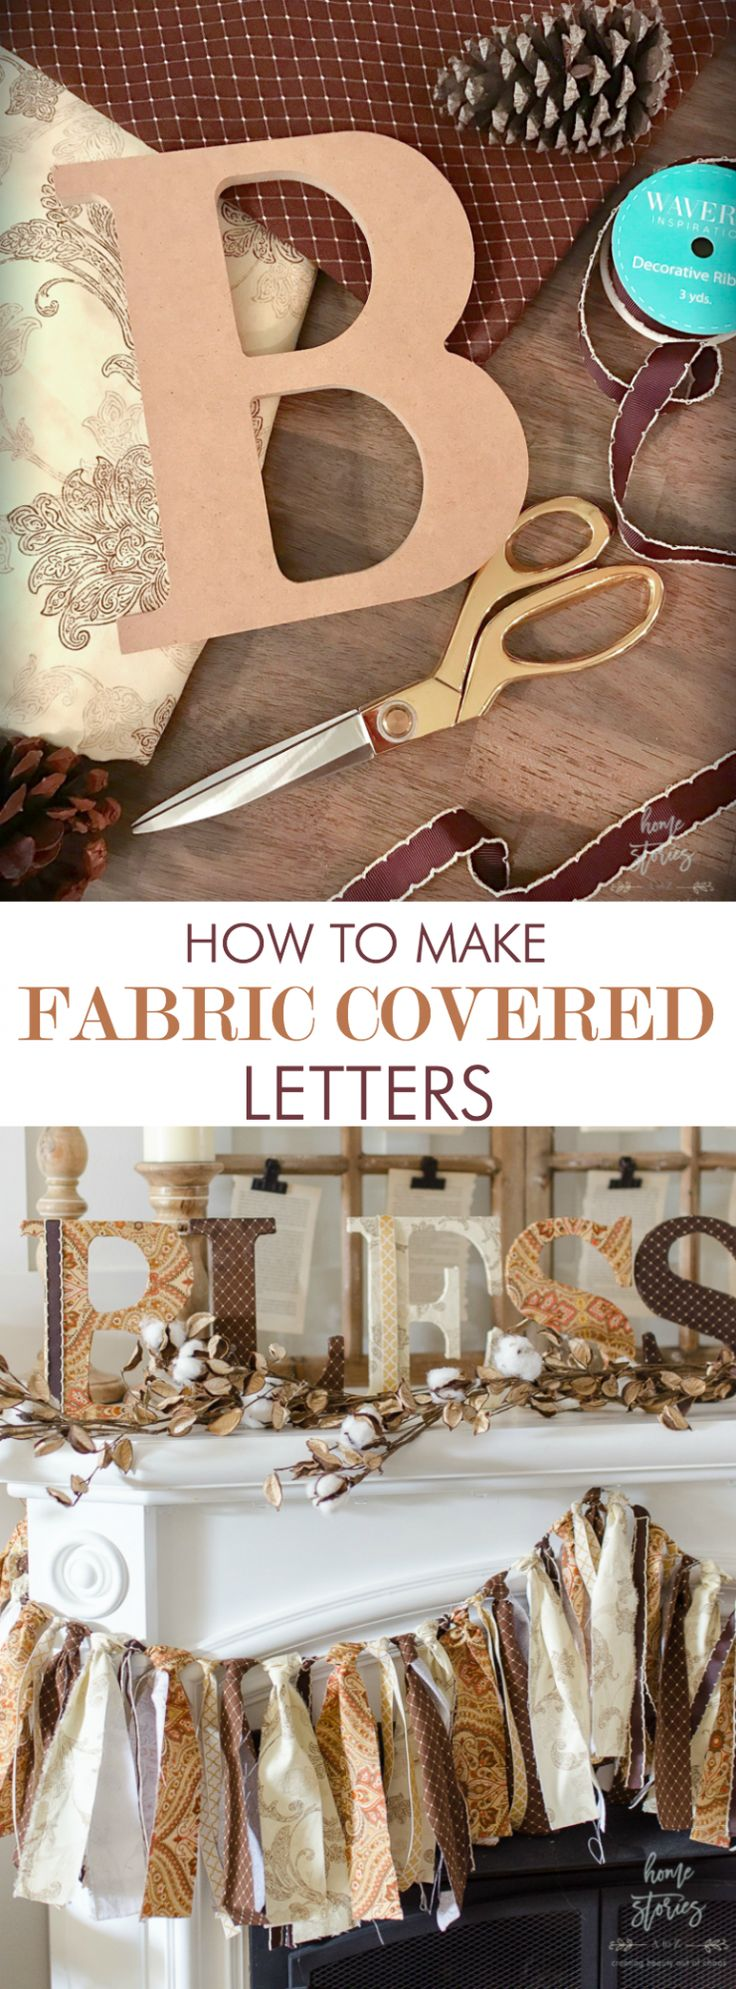 Say how you feel this holiday season with decorative fabric-covered letters that you can make yourself!